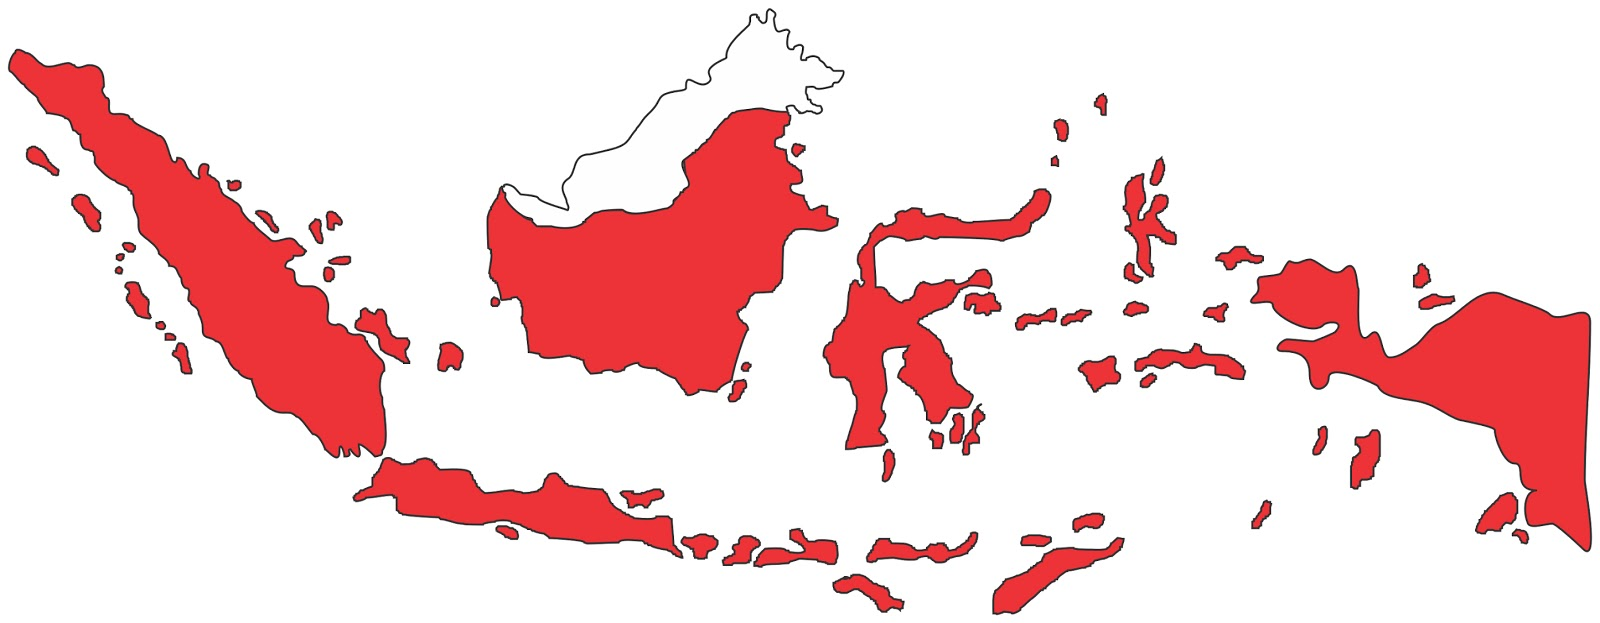 Peta Indonesia Nusantara Vector Download CDR